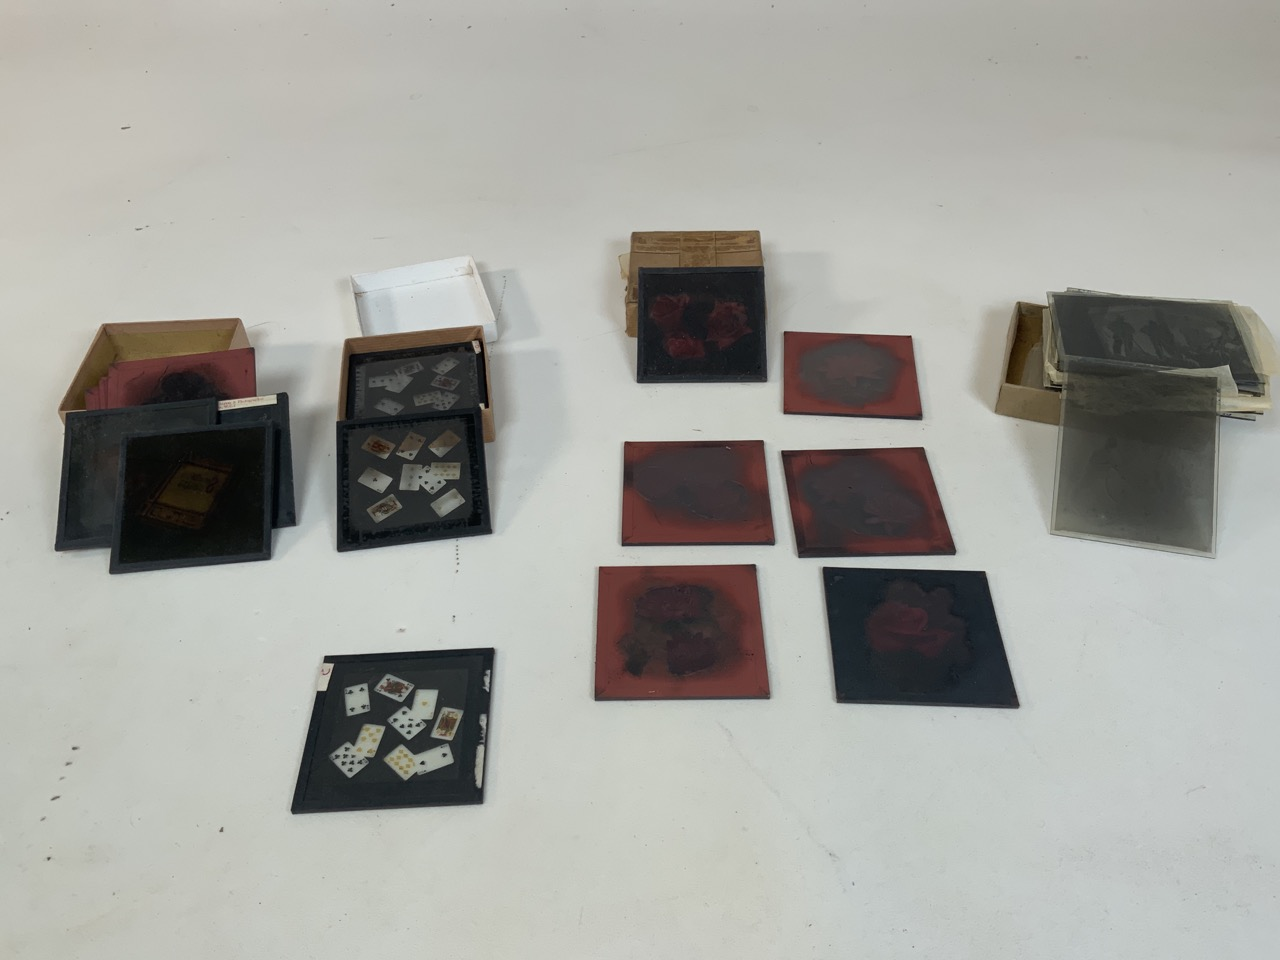 A collection of photographers glass plates including images of flowers, playing cards and